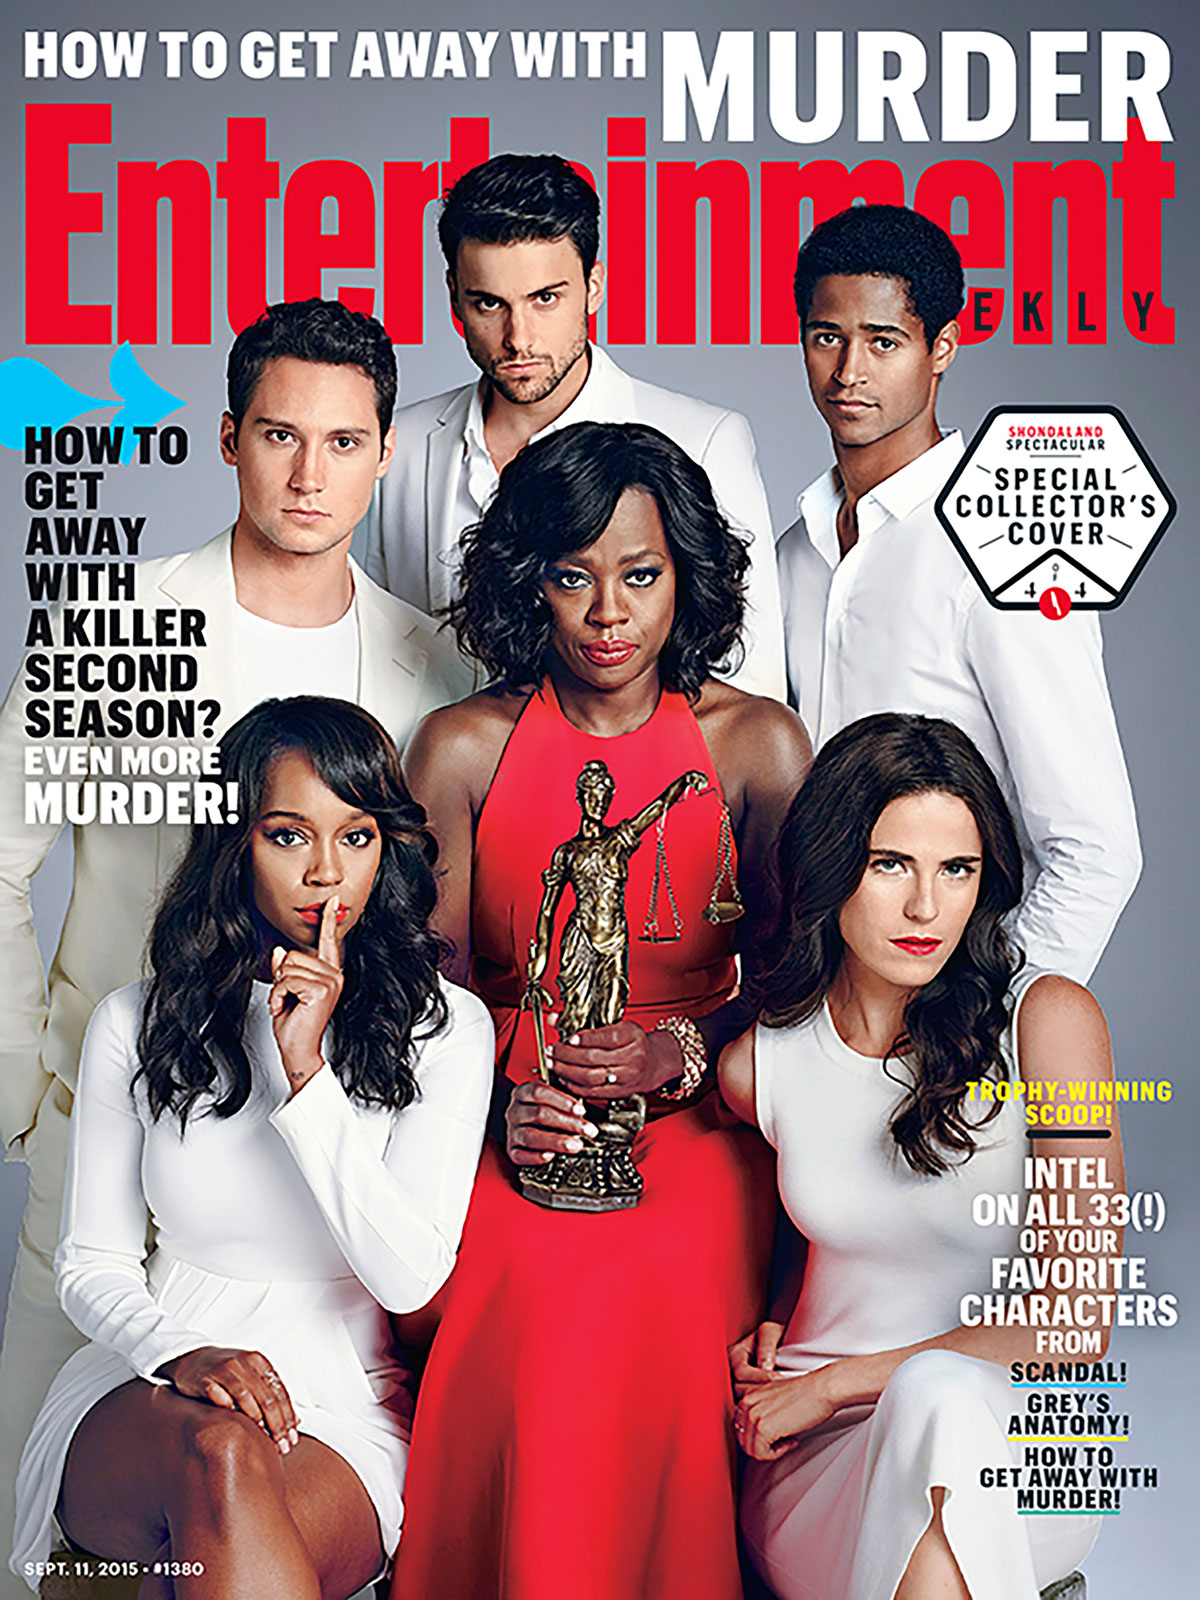 Entertainment Weekly | How to Get Away with Murder